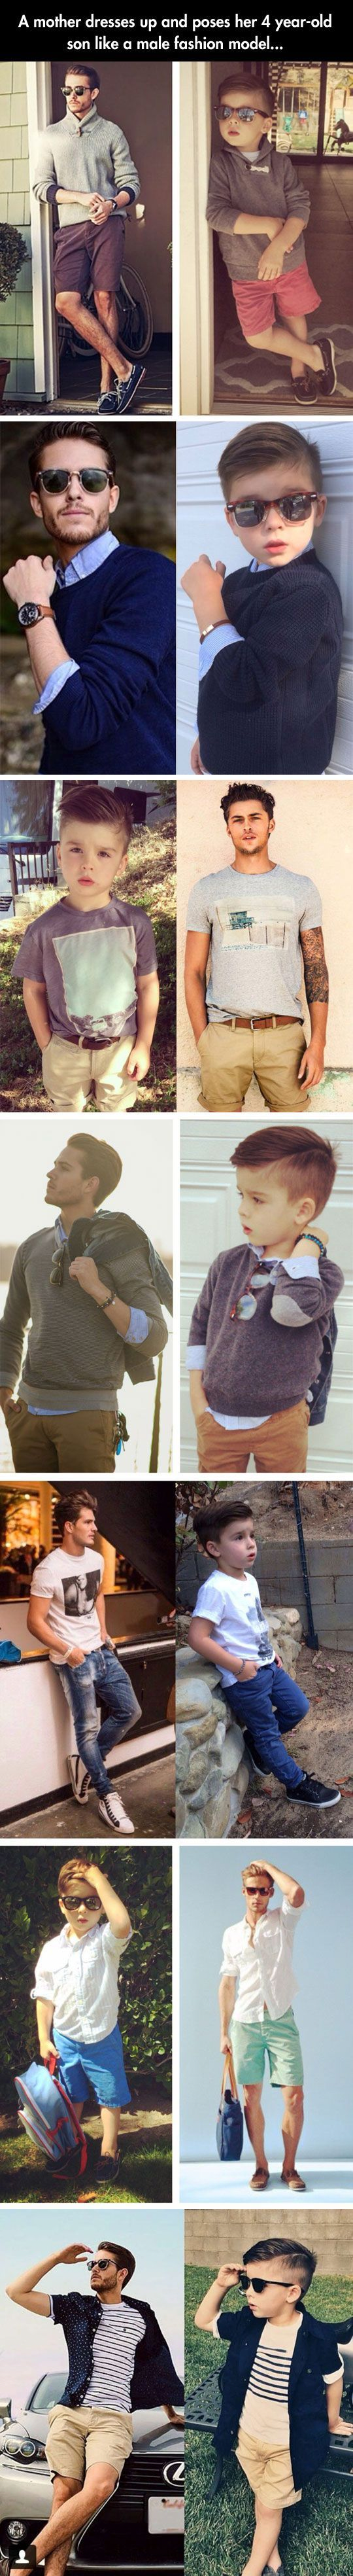 9acfe2ae2 38 best Kids fashion images on Pinterest | Kids fashion boy, Little ...